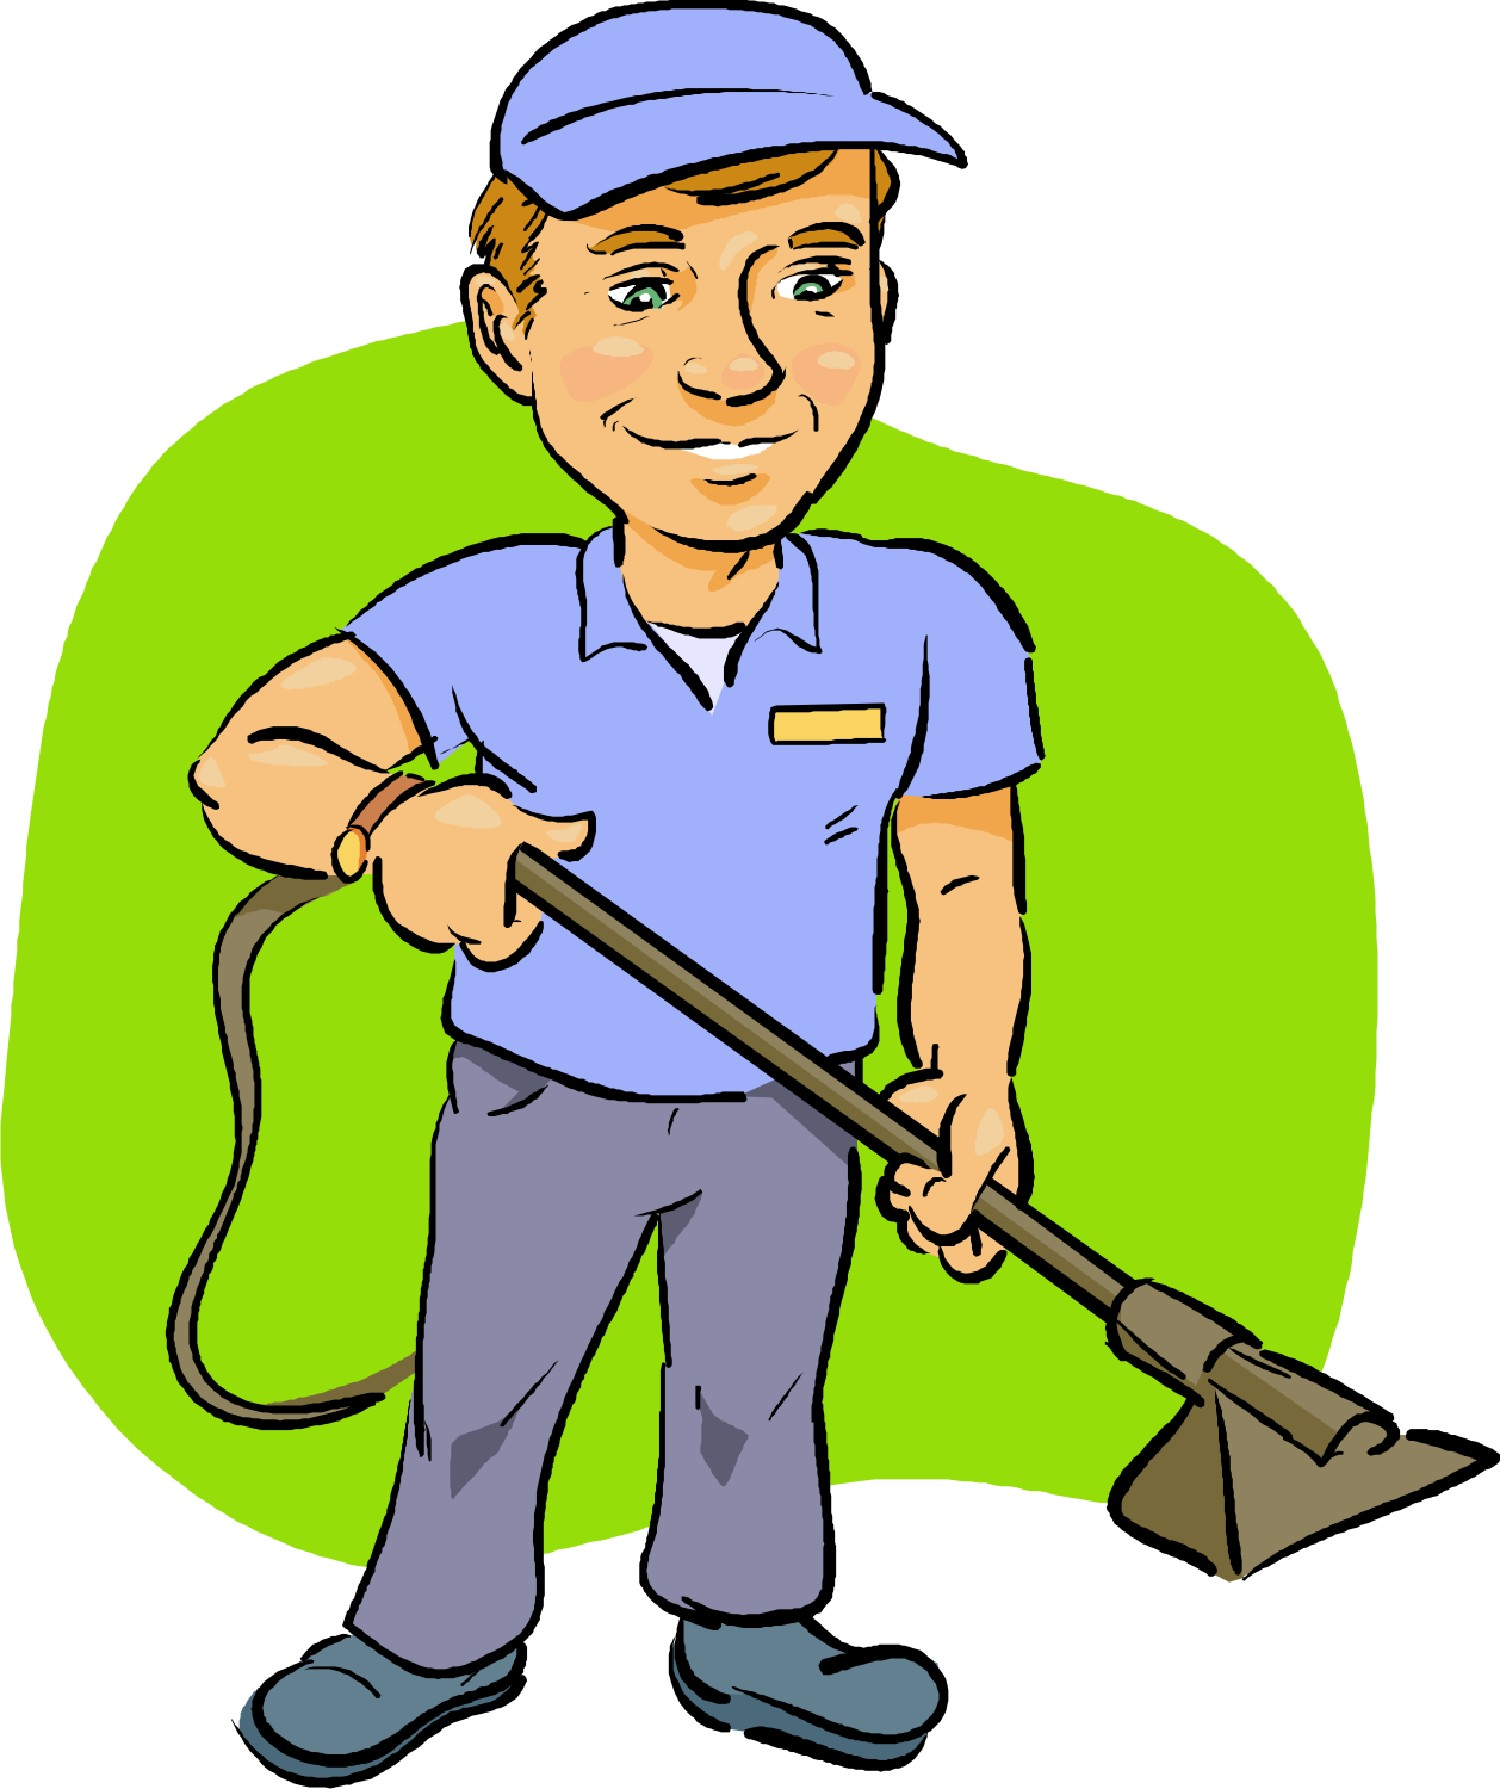 Clip Art Janitor - ClipArt Best